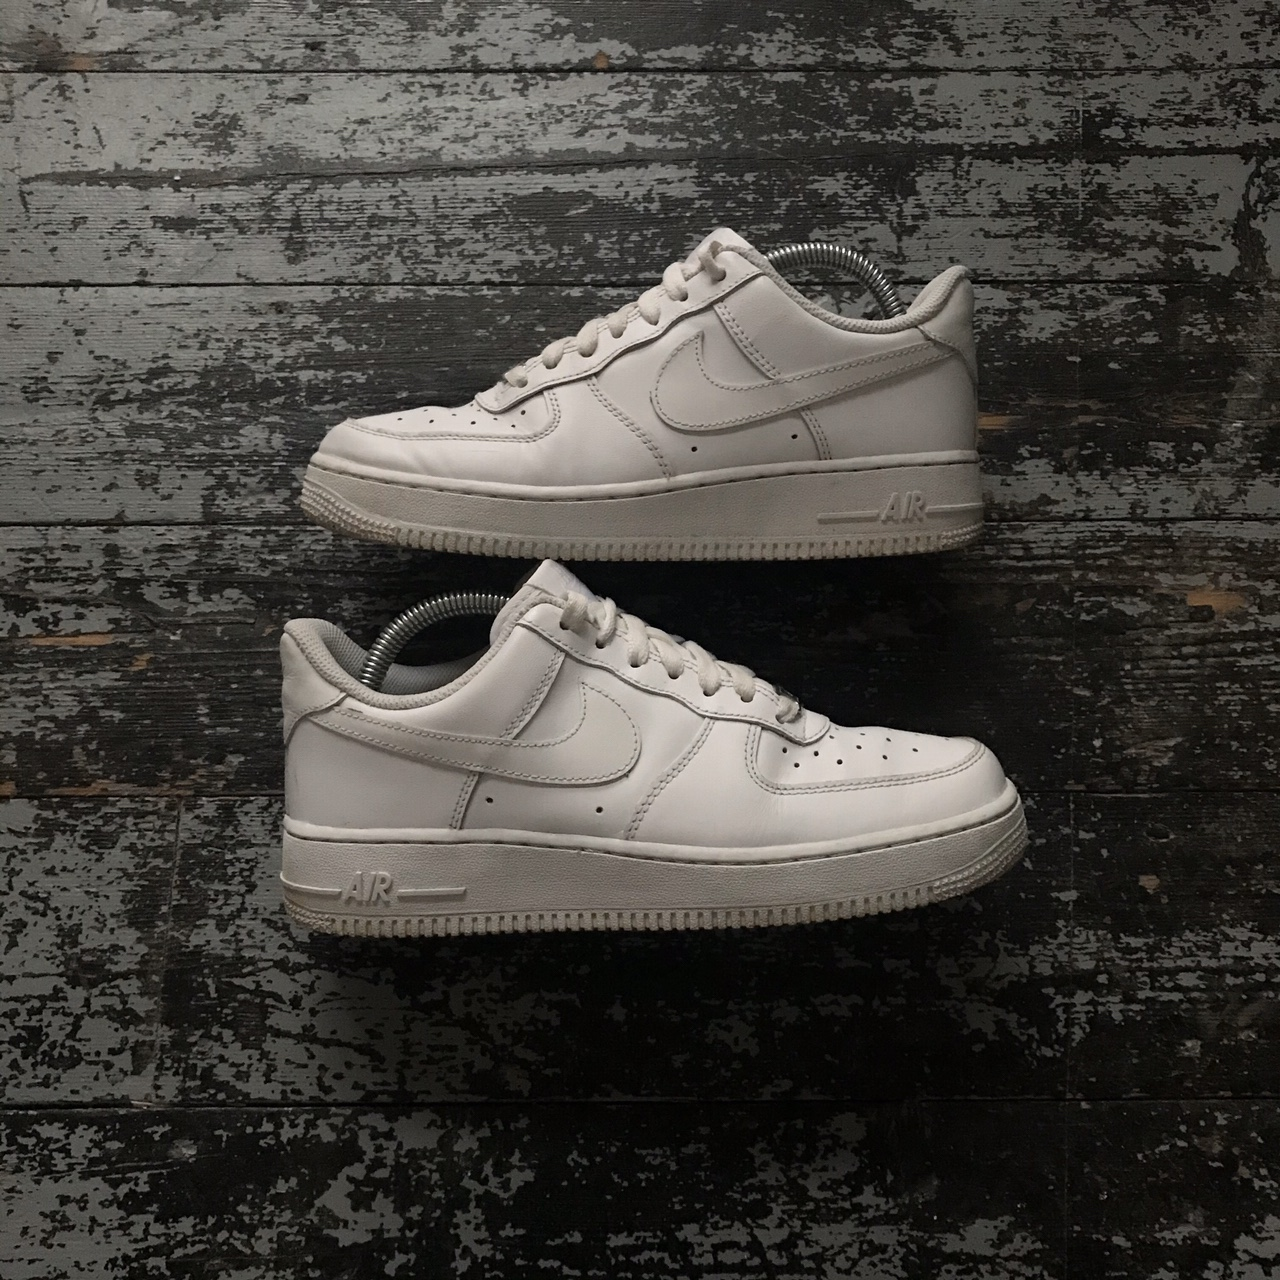 Nike Air Force 1's Ones In White   Men's Size Uk 6 by Depop